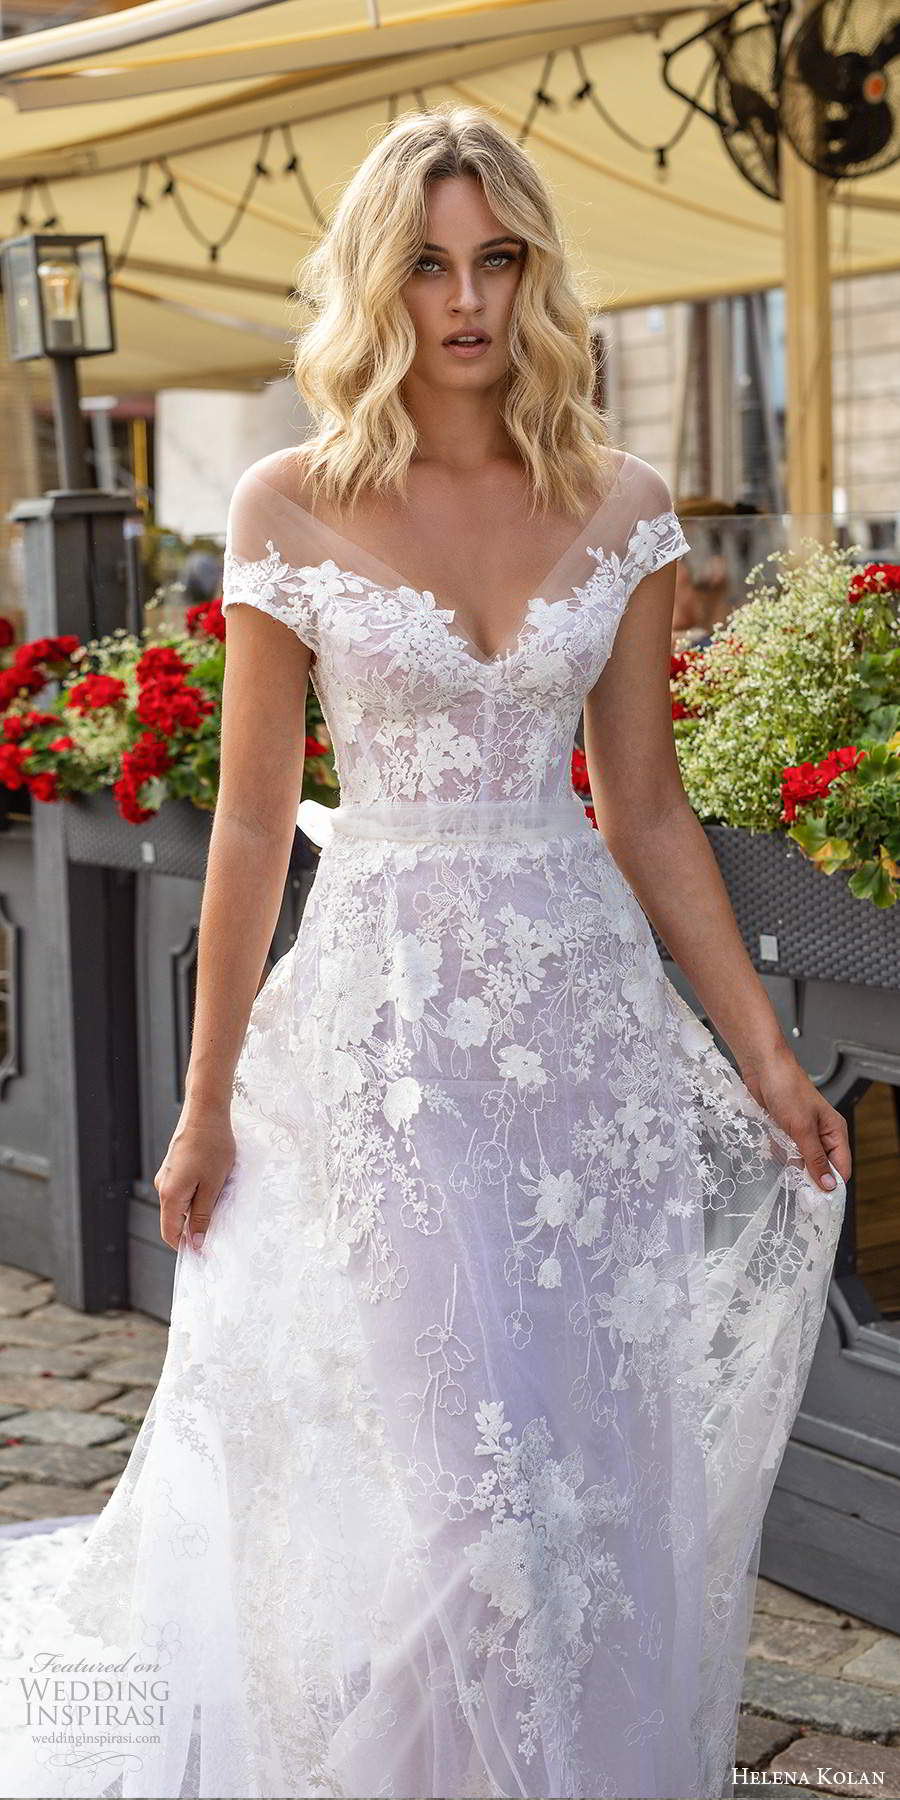 helena kolan 2020 bridal illusion cap sleeves sheer v neck sweetheart neckline fully embellished lace a line wedding dress illusion back chapel train  (4) zv